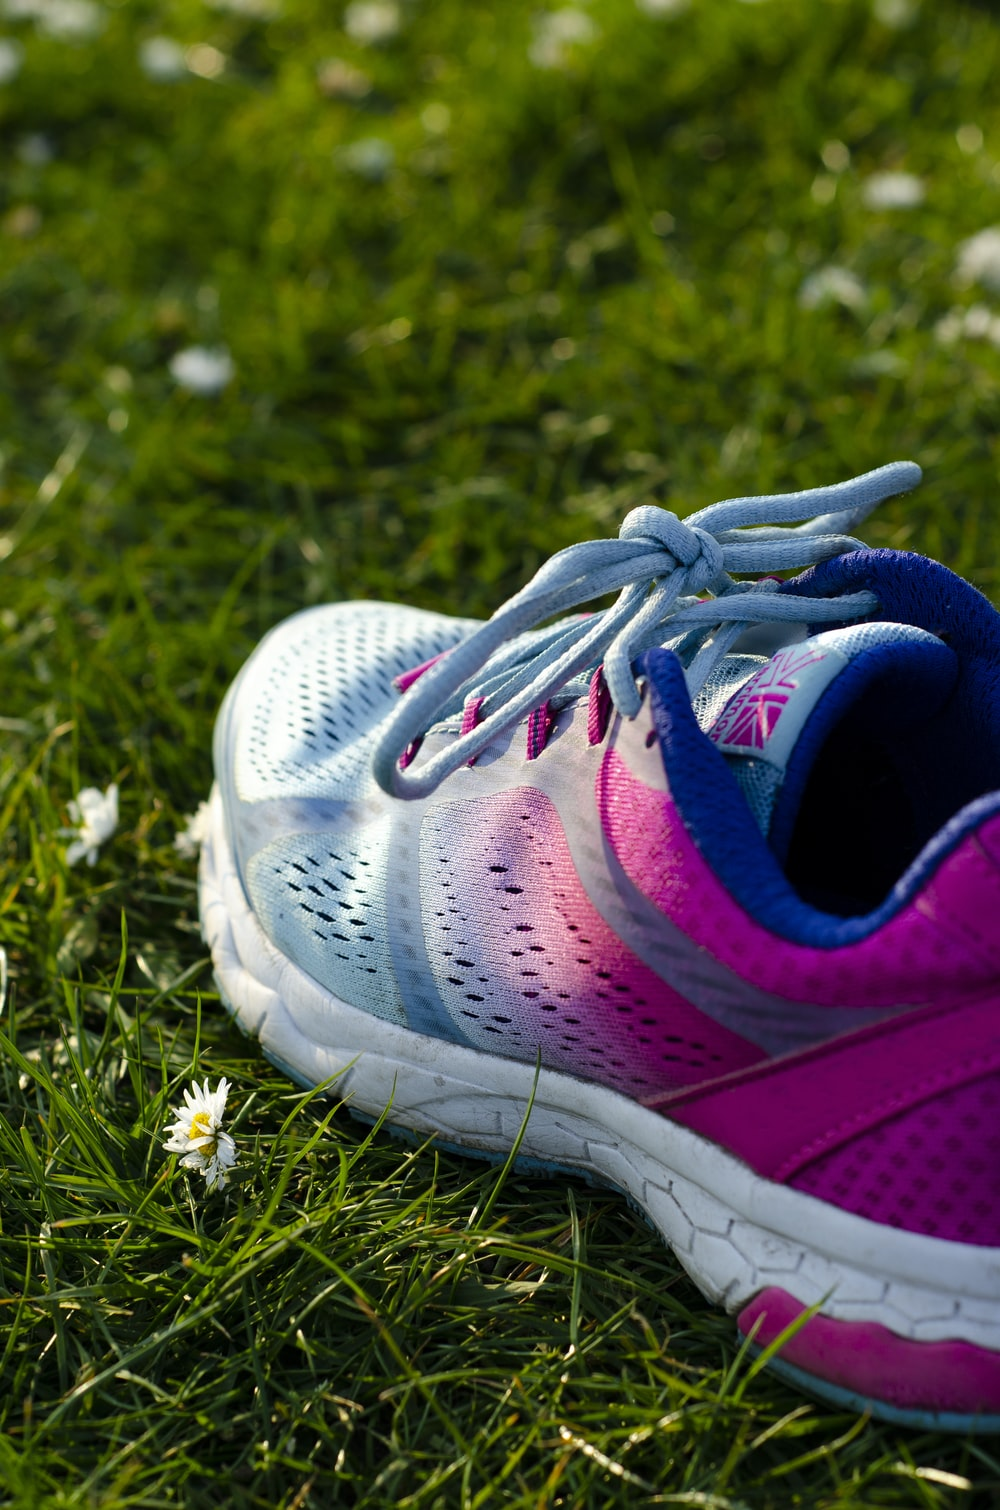 close up photo of blue and pink running shoe on green grass